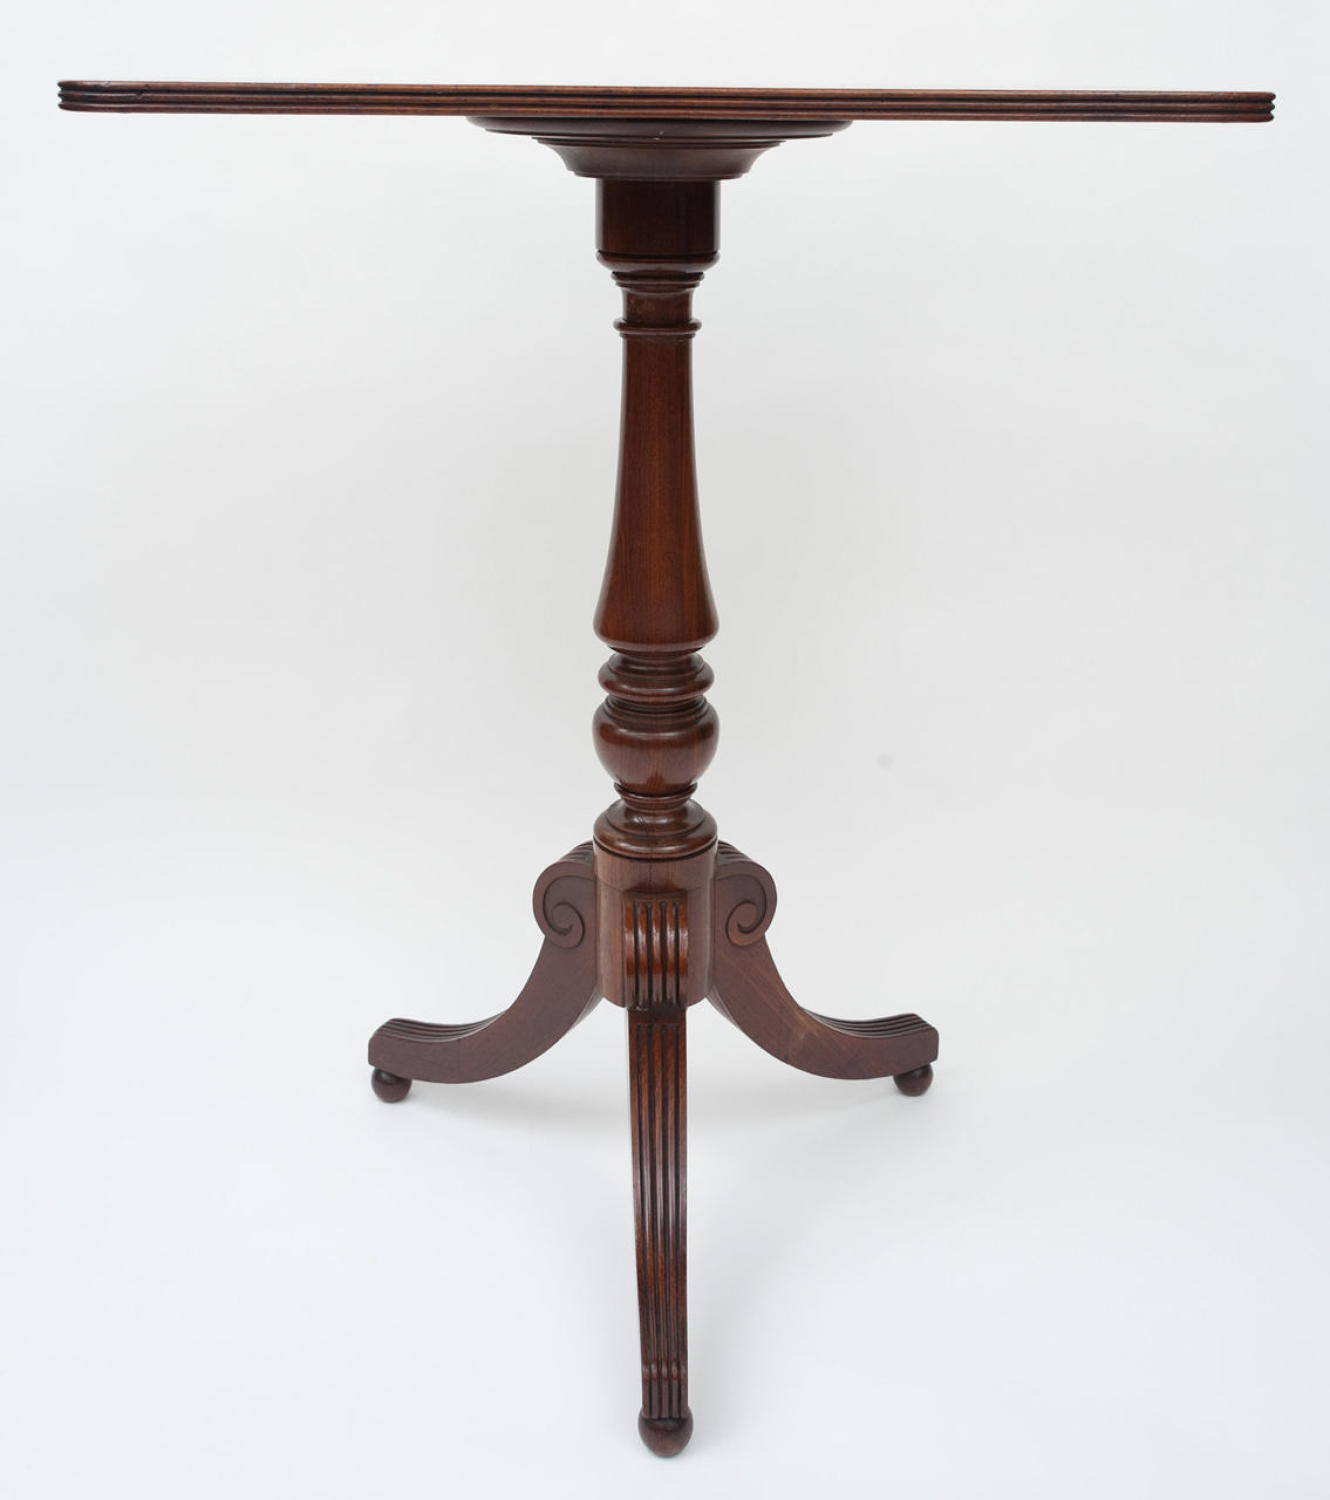 Regency Gillow mahogany occasional table